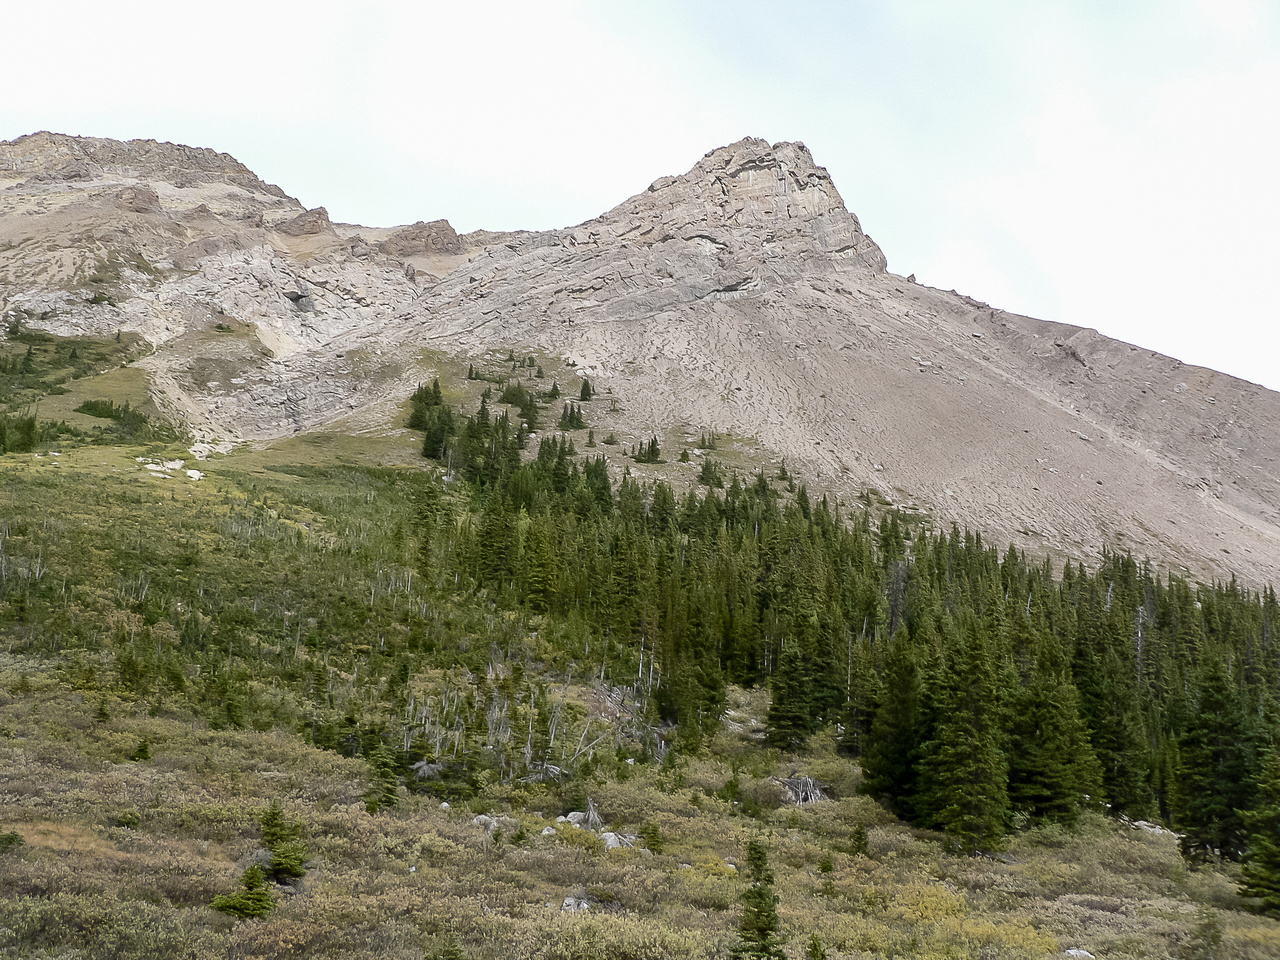 View up the SW aspect of Skoki Mountain.